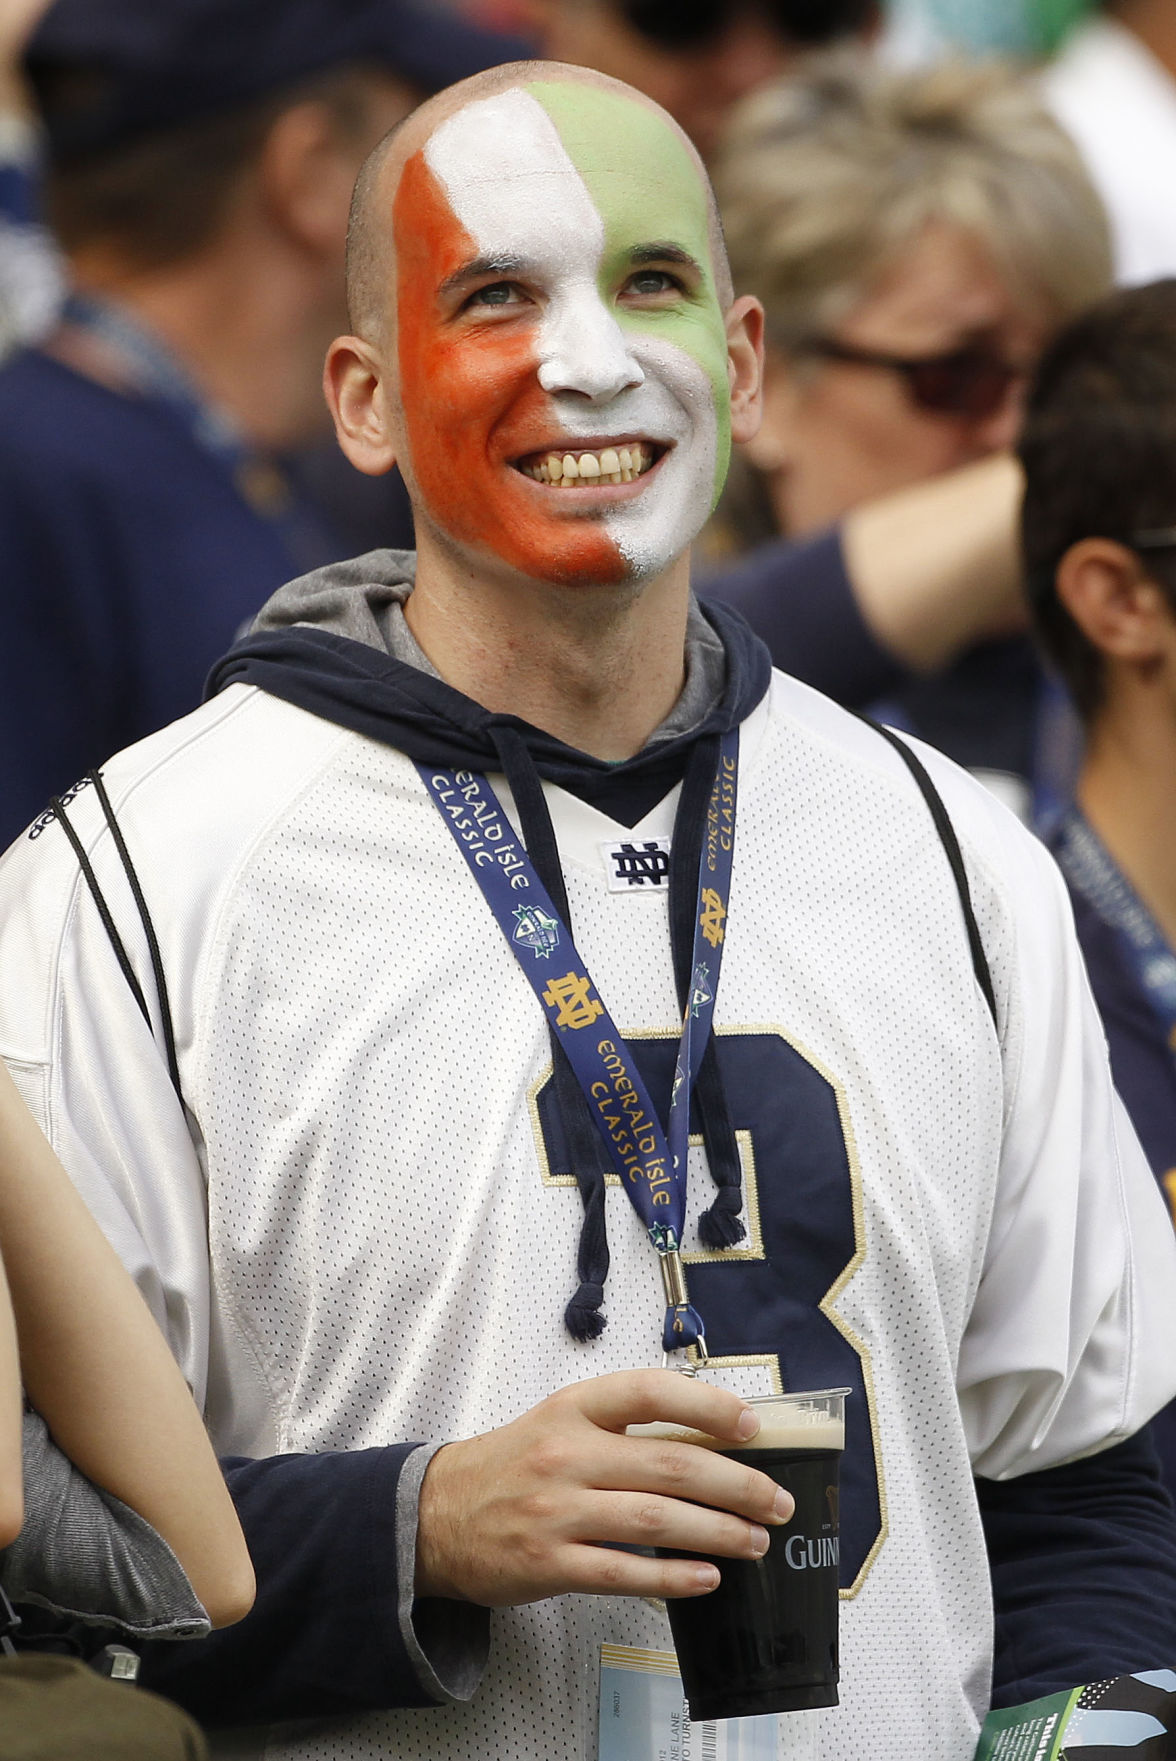 Ireland Navy Notre Dame Football